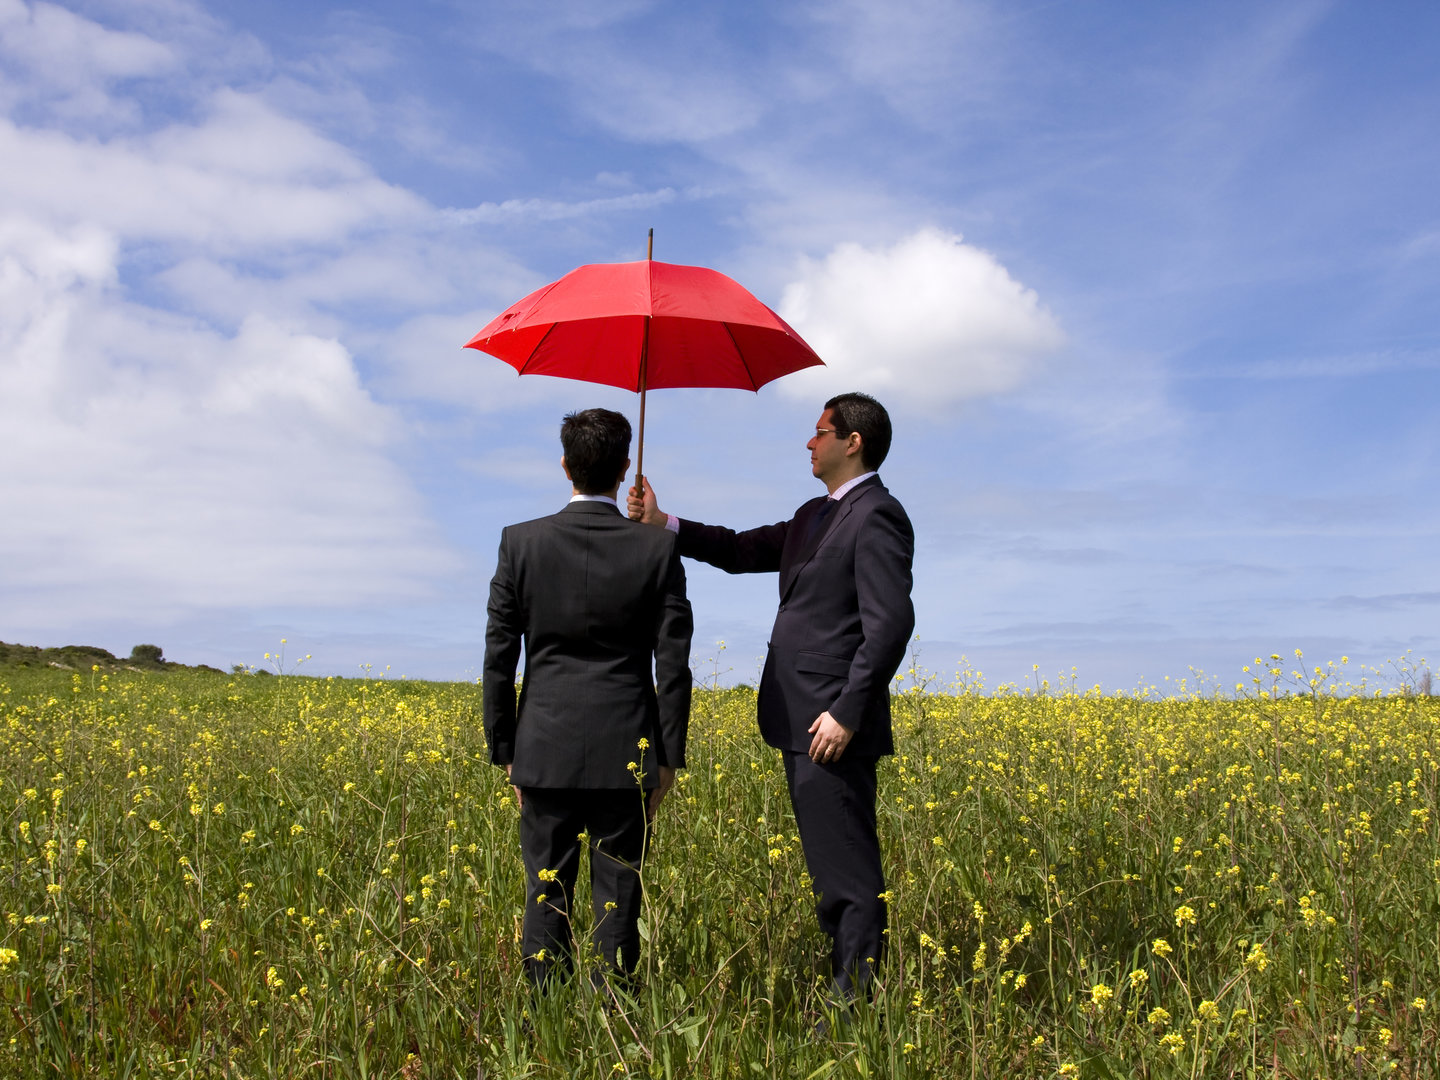 At Peter Vickers Insurance Brokers Lindfield, we partner with small to medium businesses and tailor insurance to their specific needs and budgets. See our Insurance Newsletter for the HOT topics related to Insurance.